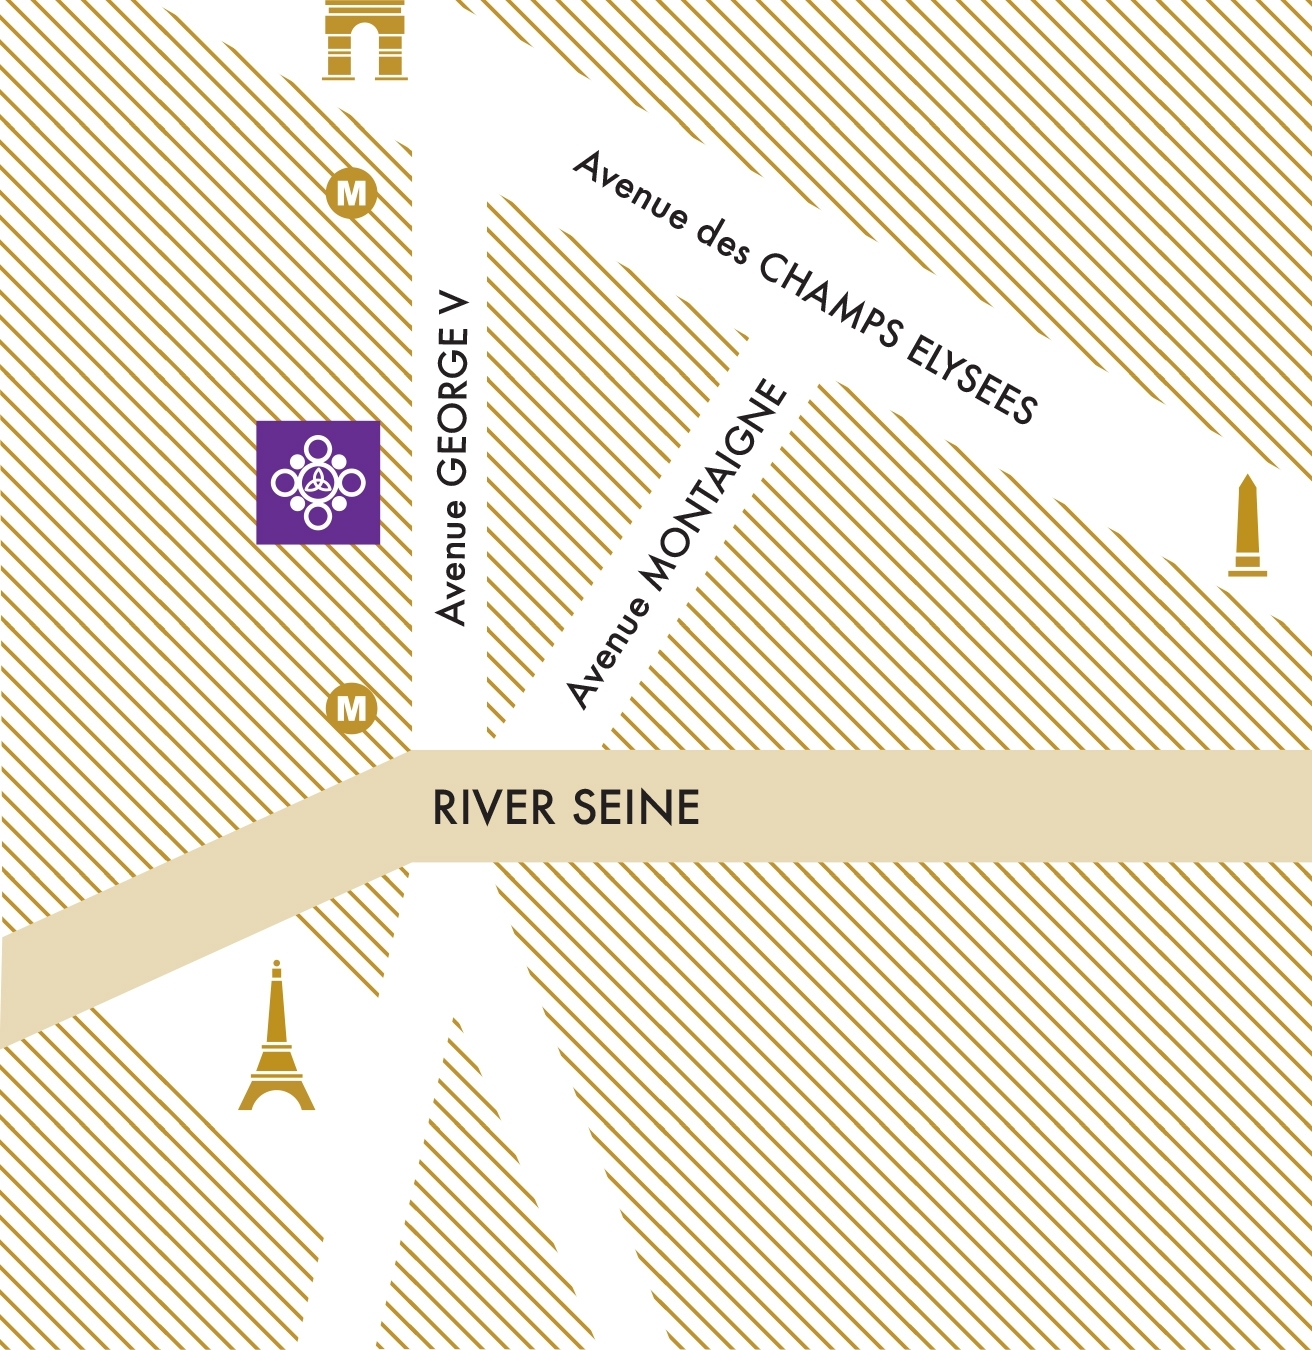 American Cathedral Access Map HR.jpg